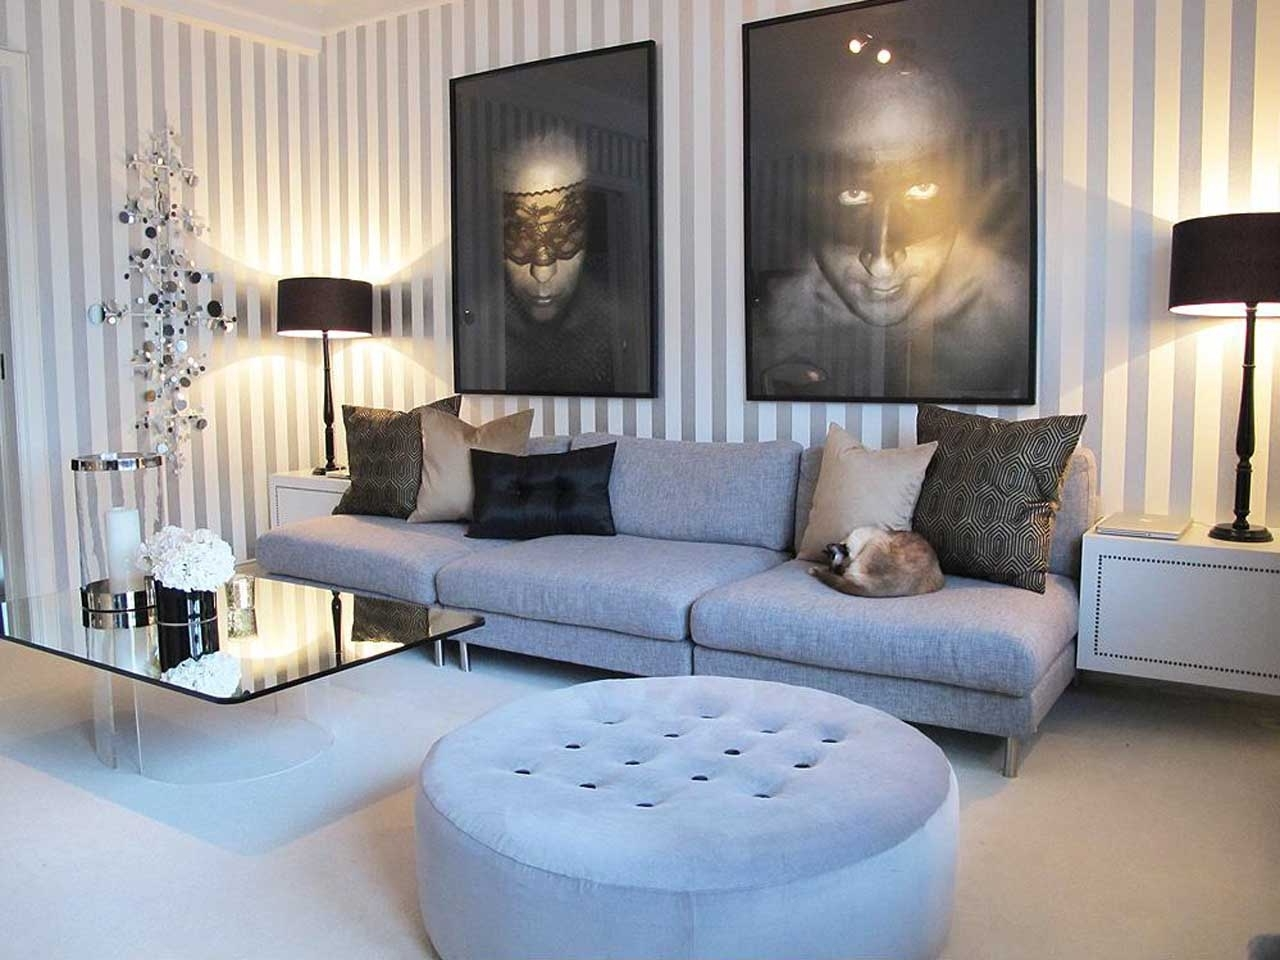 Funiture: Contemporary Living Room Furniture With Grey Sofa Made Of Throughout Best And Newest Living Room Coffee Table Lamps (View 10 of 20)